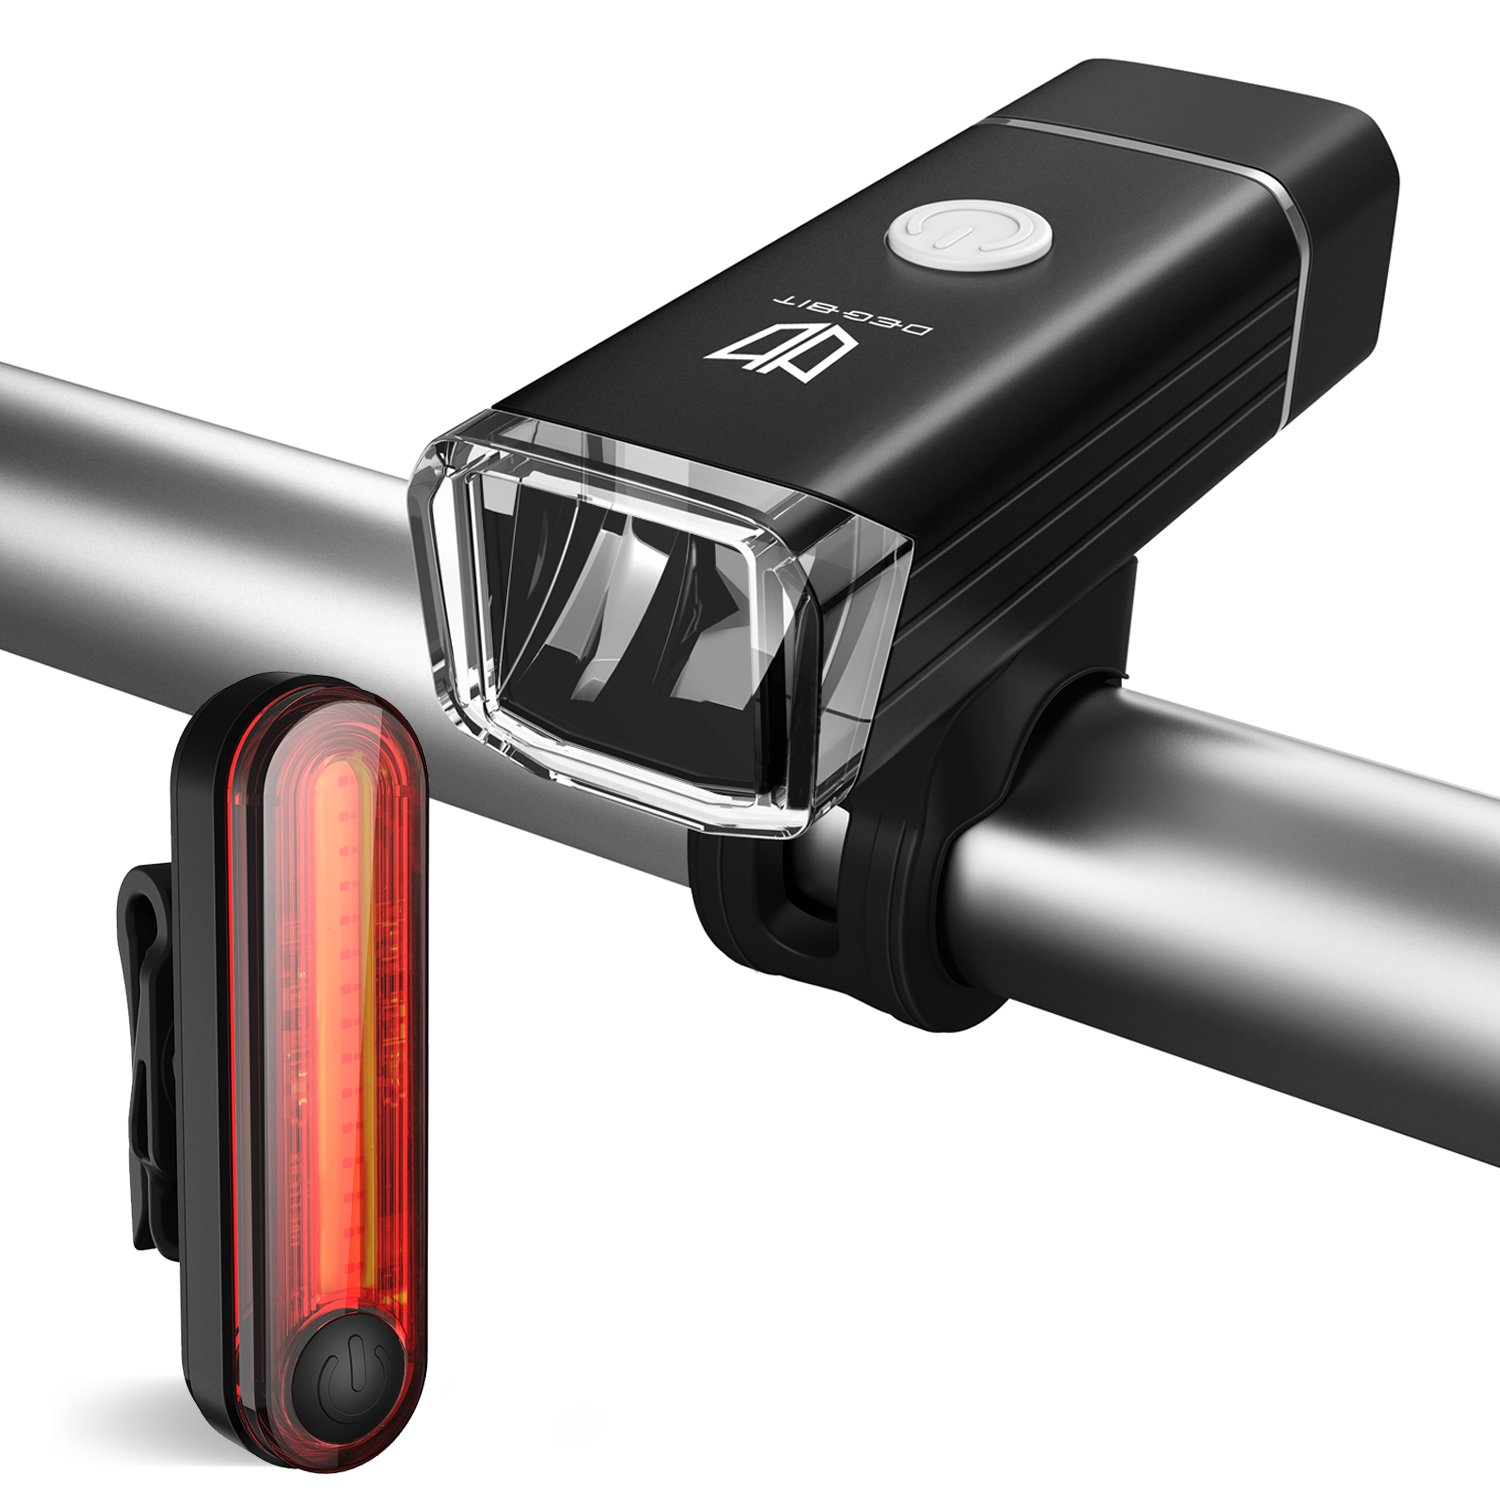 Bike Lights, Degbit USB Rechargeable Bike Light Set, Mountain Bike ...